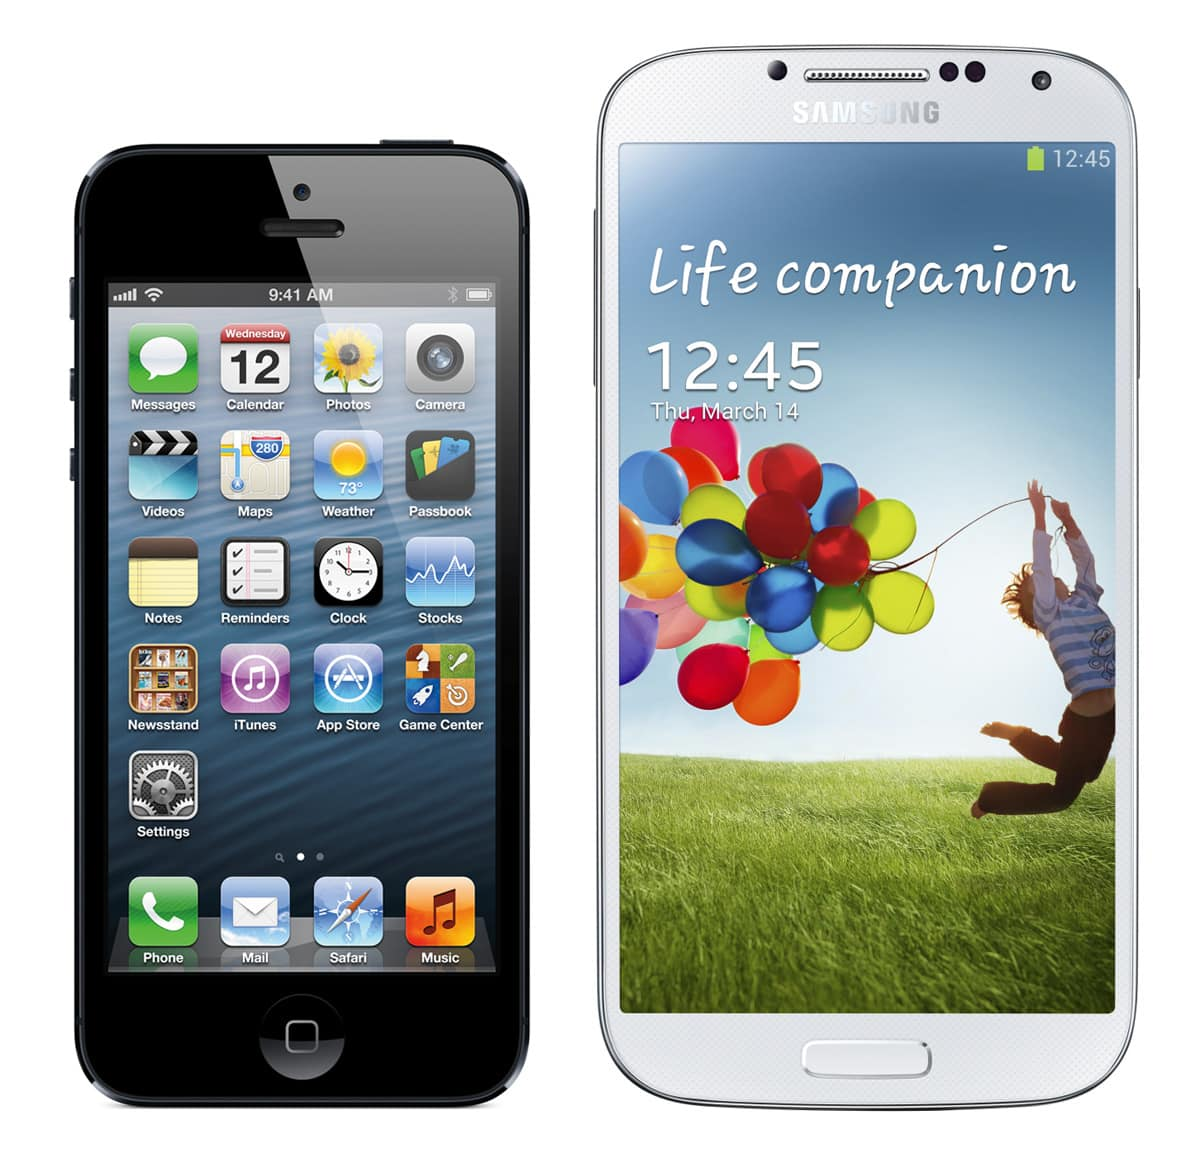 A to-scale comparison of the iPhone 5 and Galaxy S 4.